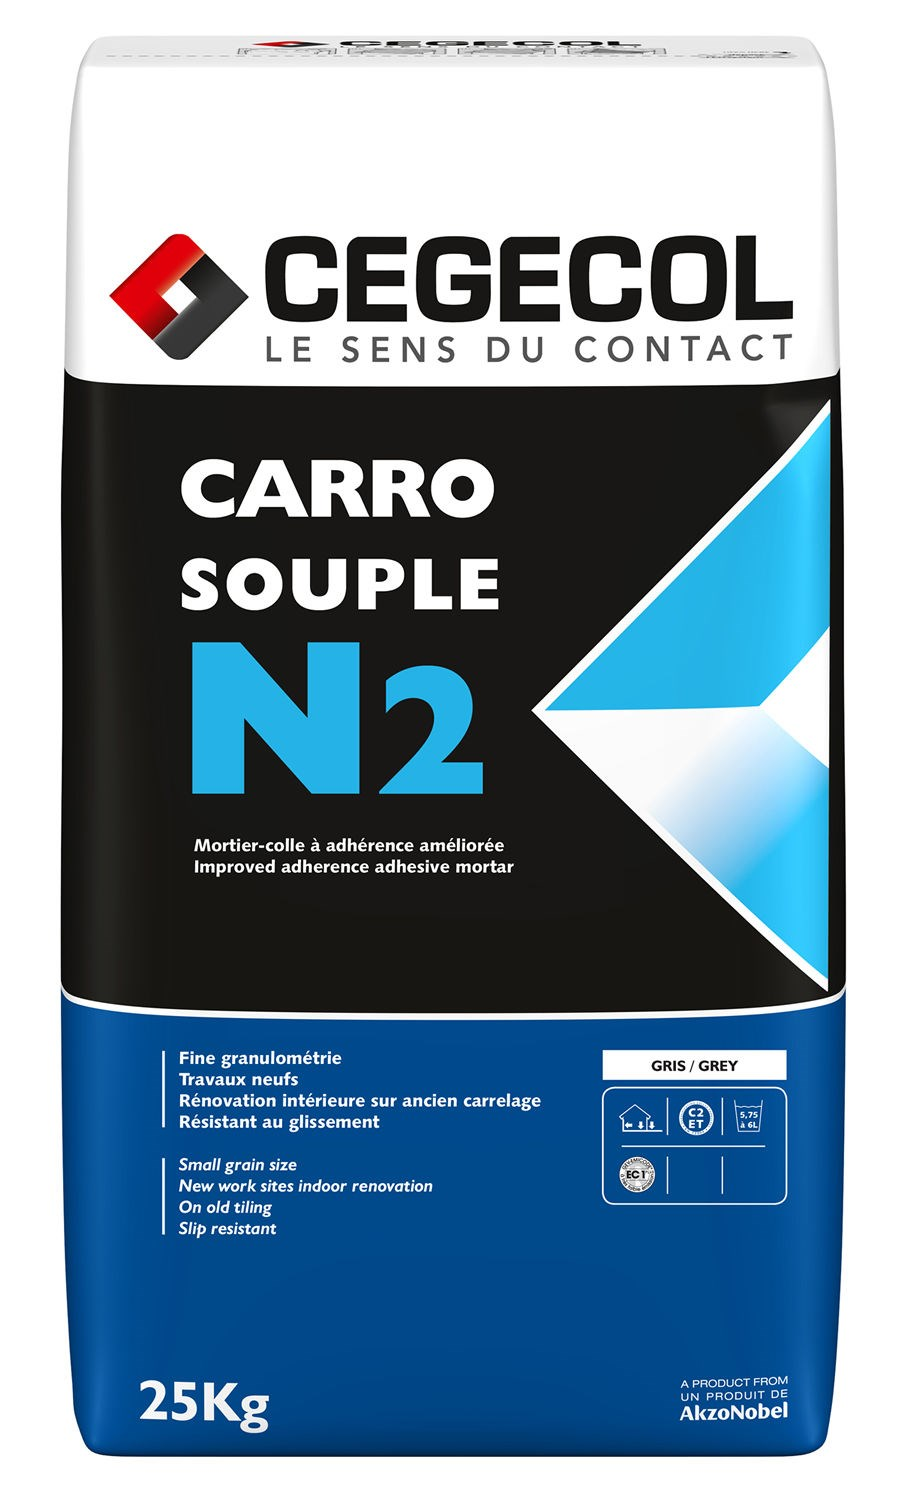 Mortier Colle Carrelage Exterieur Mortier Colle Pour Carrelage C2 Et Carrosouple N2